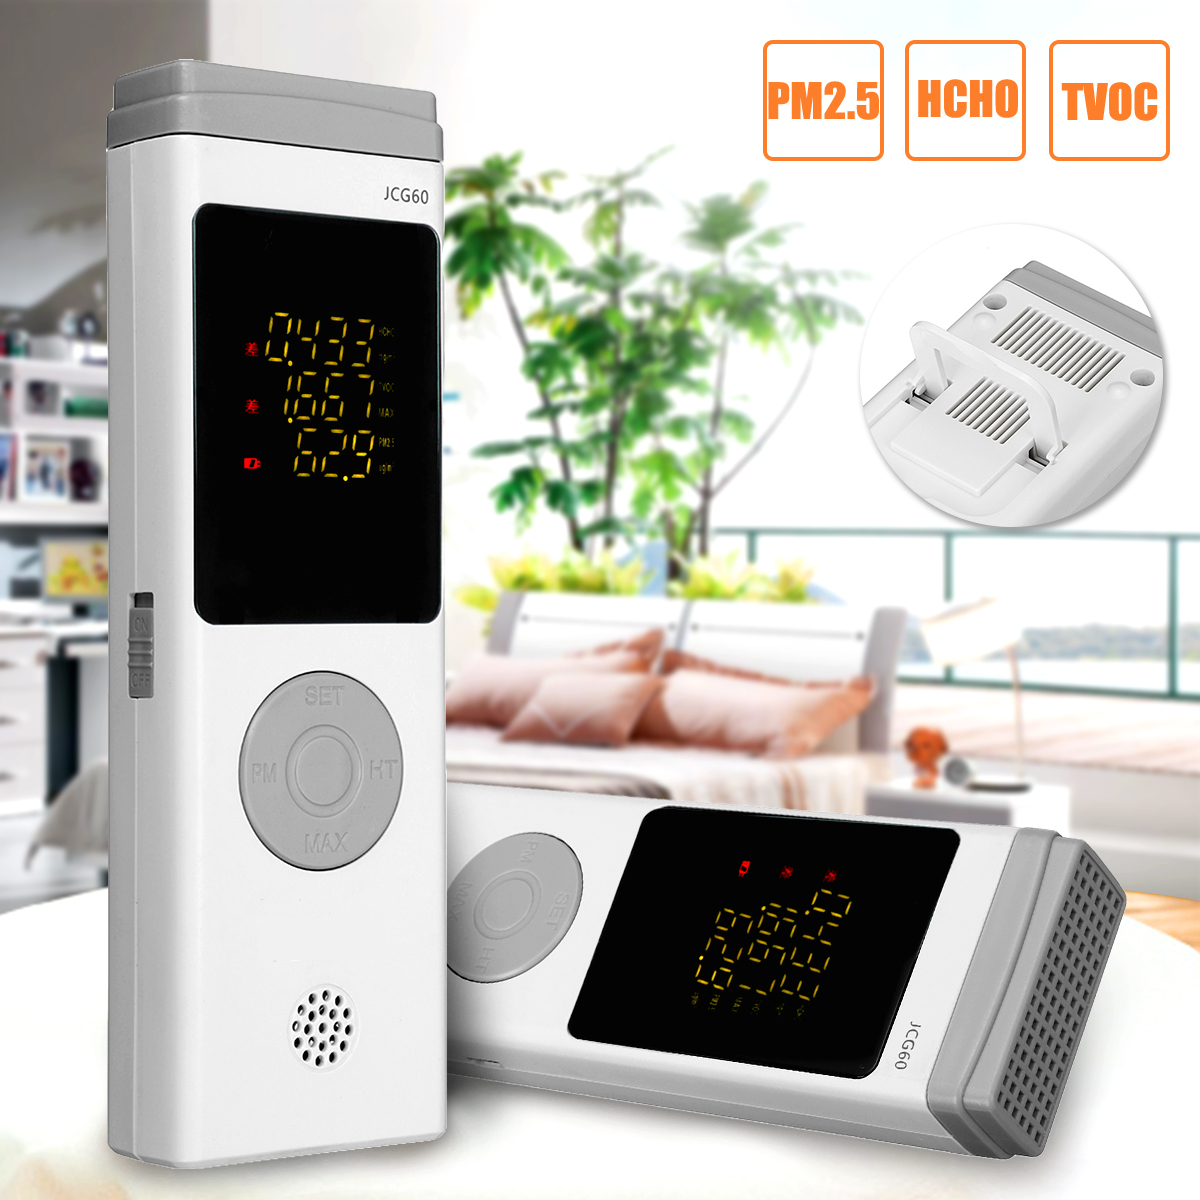 ZEAST Formaldehyde Detector Detects HCHO TVOC PM2.5 Real Time Testing Record Analyzed USB Charging Monitor Air Quality for Home цена